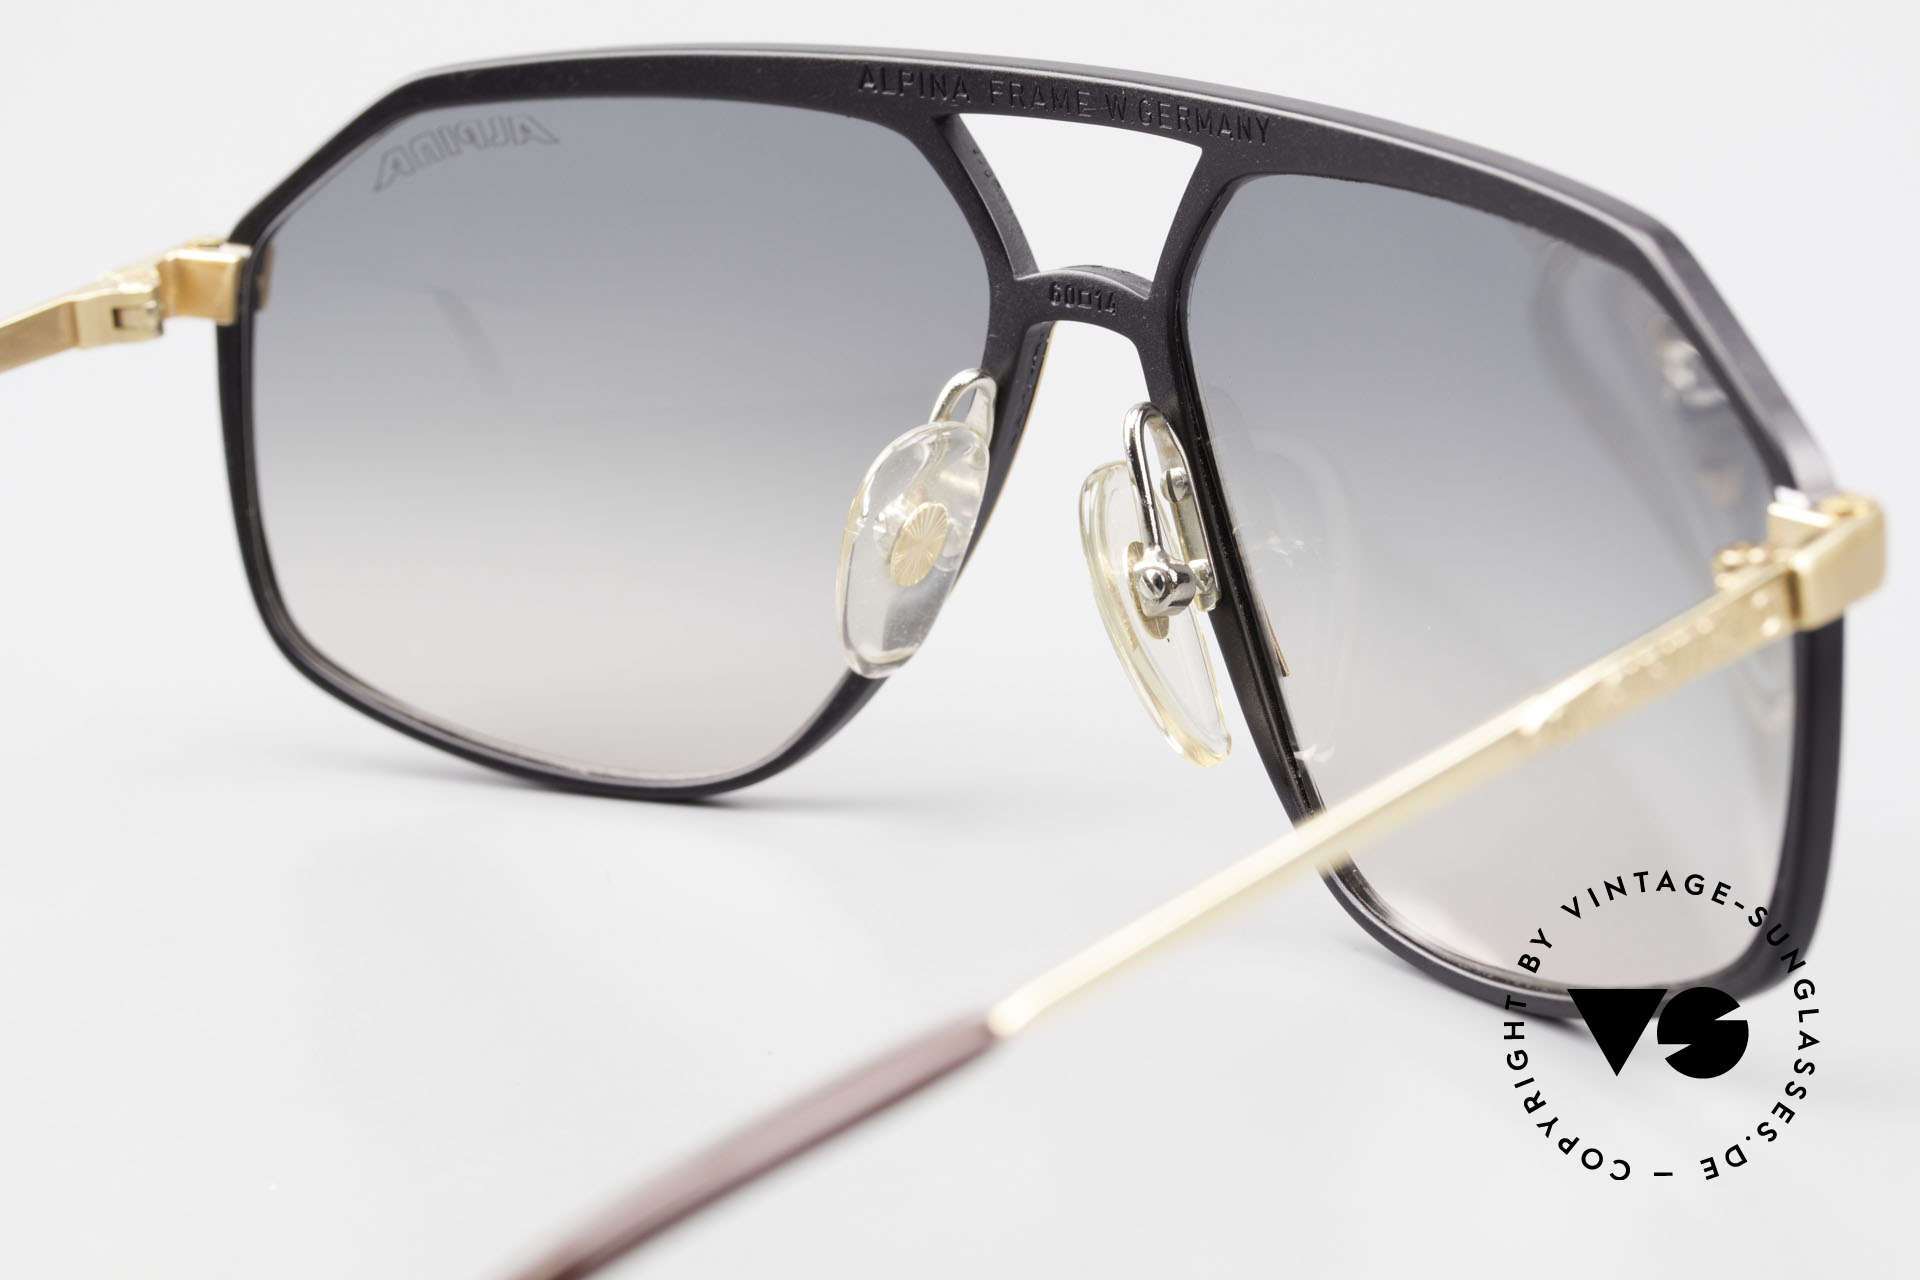 Alpina M6 True Vintage 80's Sunglasses, true rarity and sought-after collector's item, vertu, Made for Men and Women